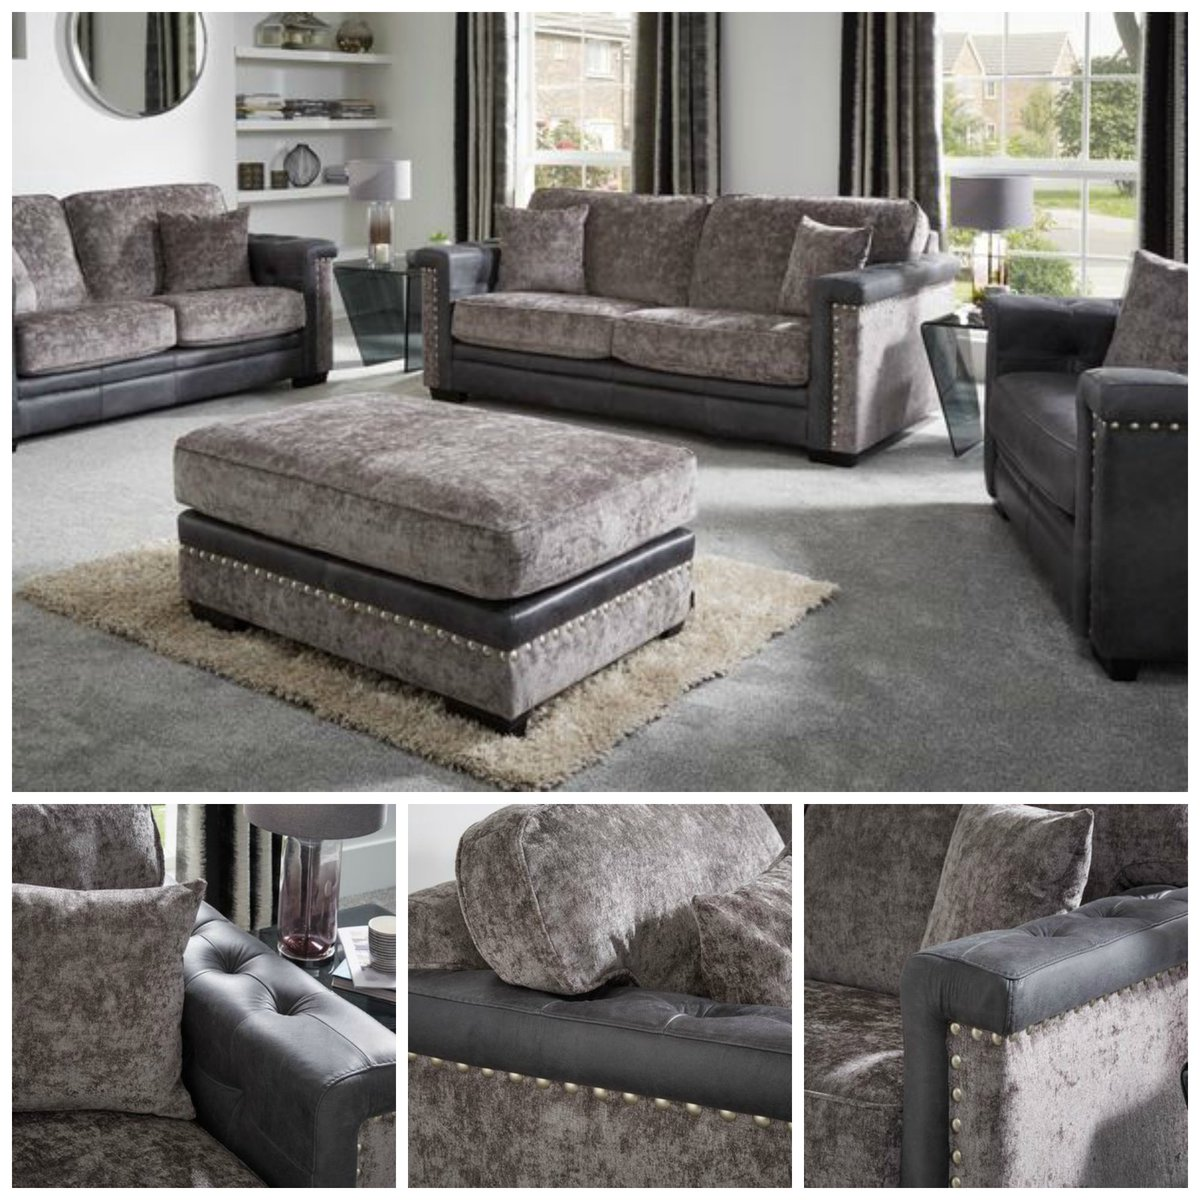 Order Now For Guaranteed Christmasdelivery Https Www Scs Co Uk Sisi Italia Antonio 3 Seater Sofa Standard Back L037667 Html Pic Twitter Tam9qxpnie